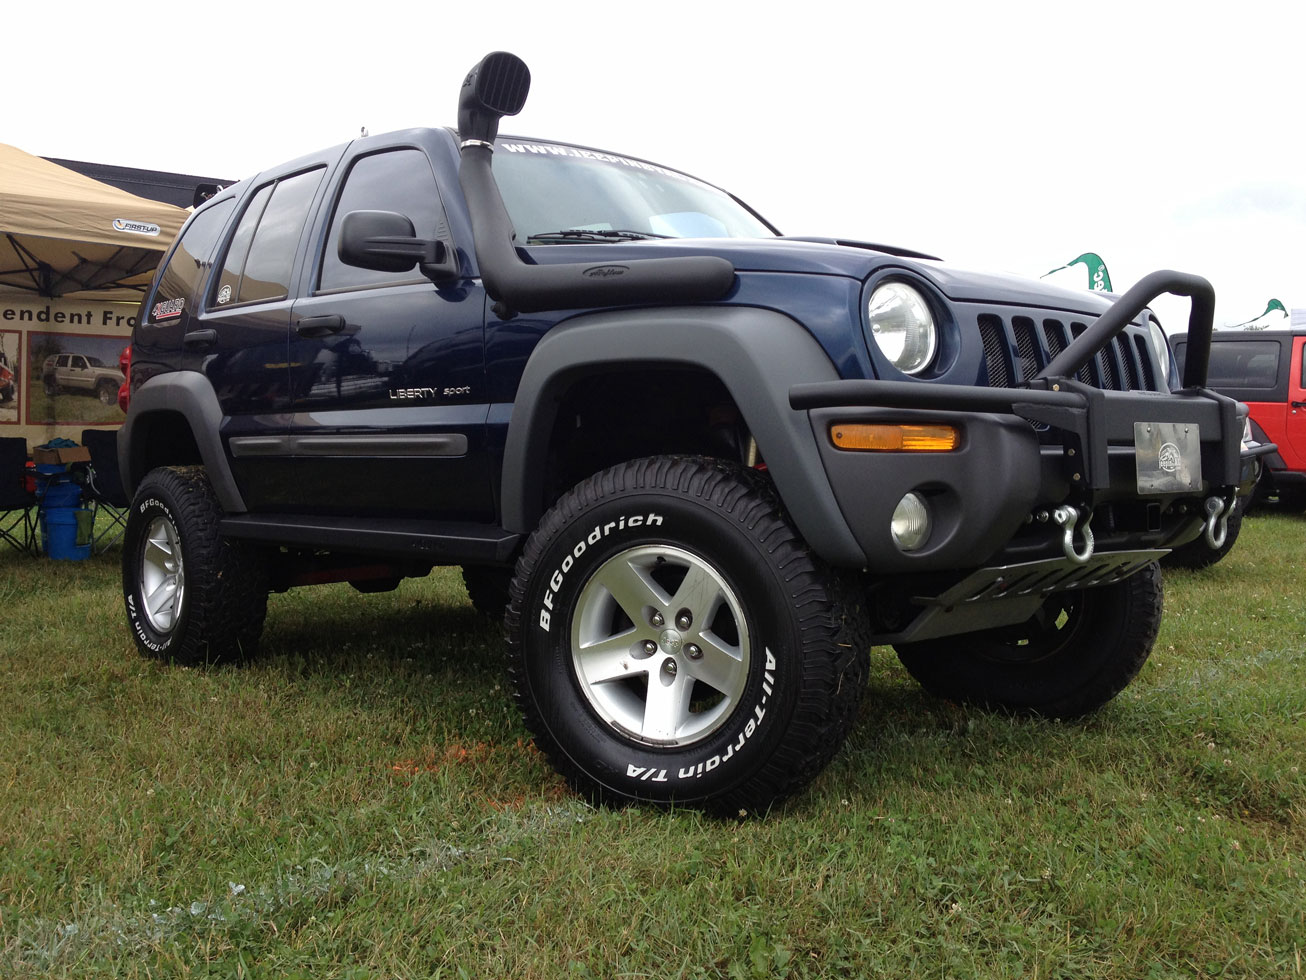 Jeep Grand Cherokee Off Road Bumper >> Jeep Liberty Auto Parts